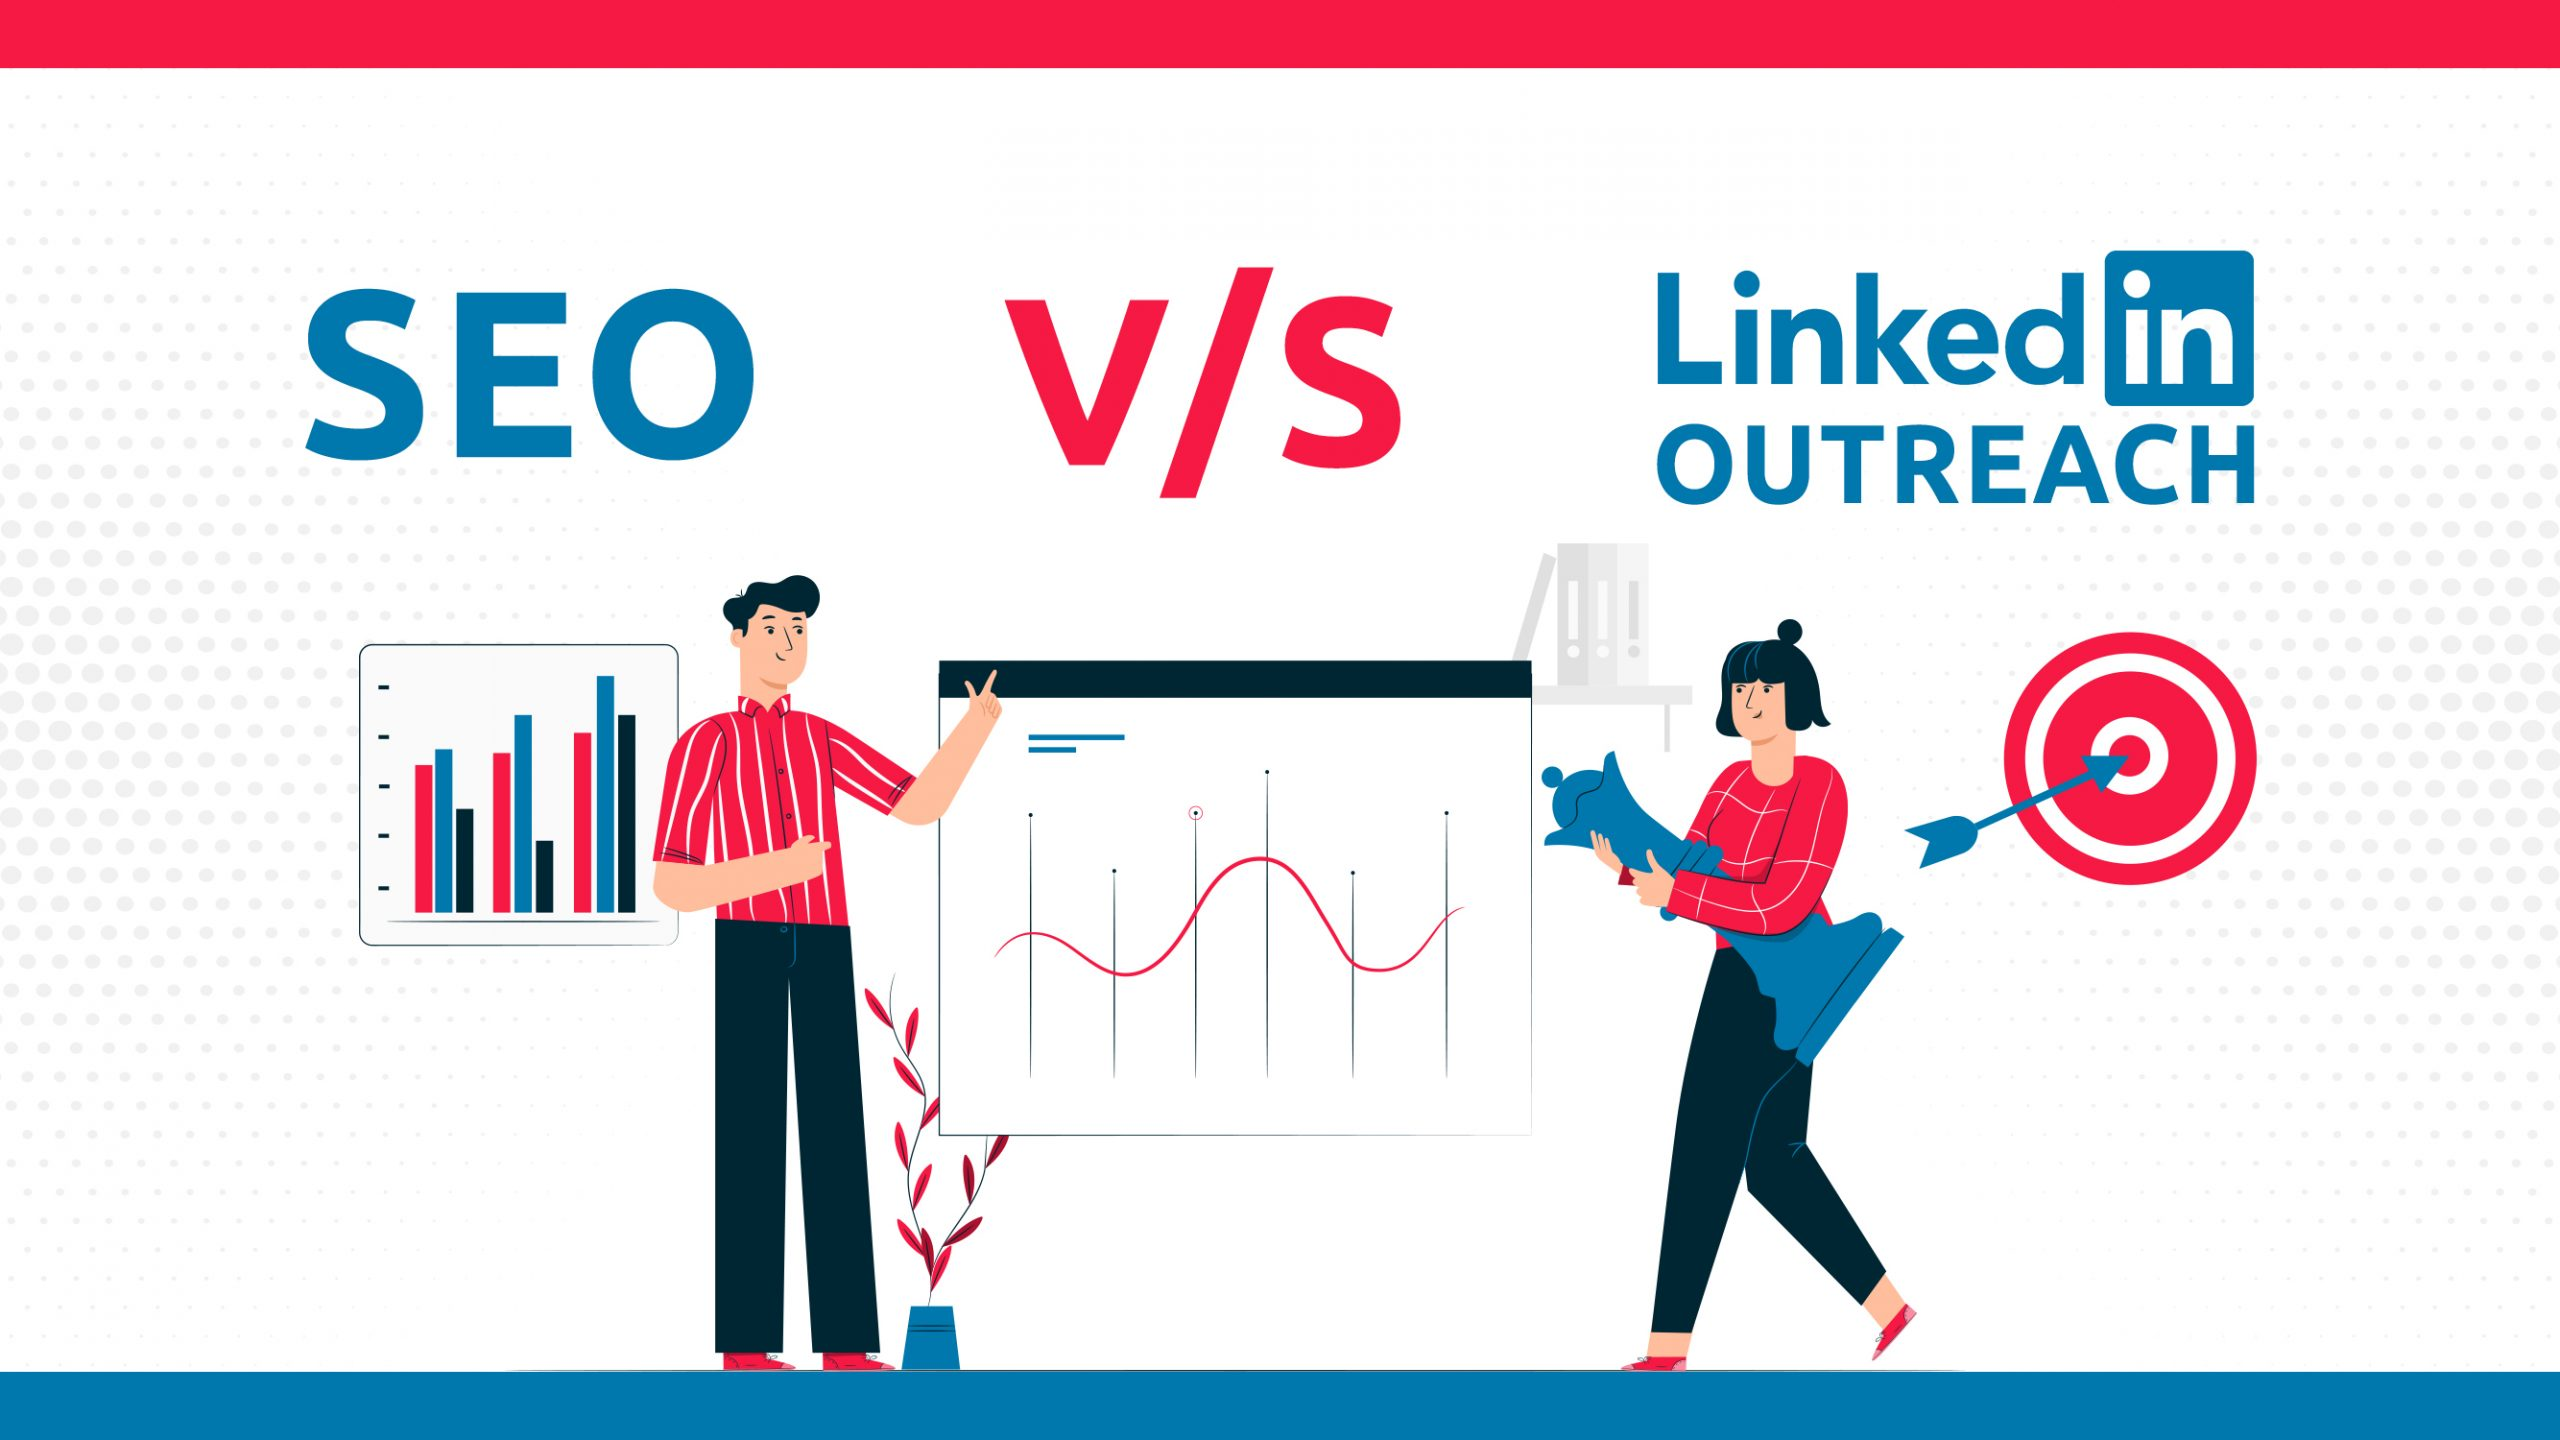 SEO Vs. LinkedIn Outreach : Lequel gagne ?